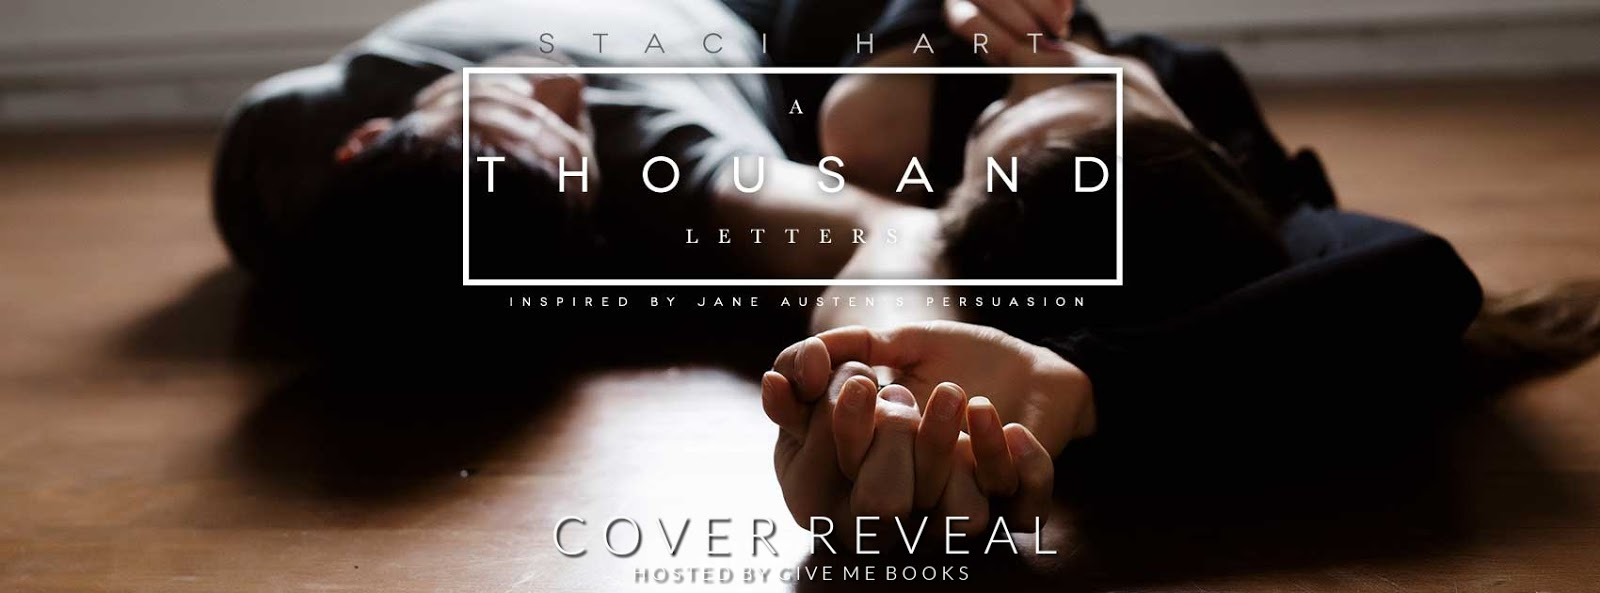 a thousand letters staci hart epub vk